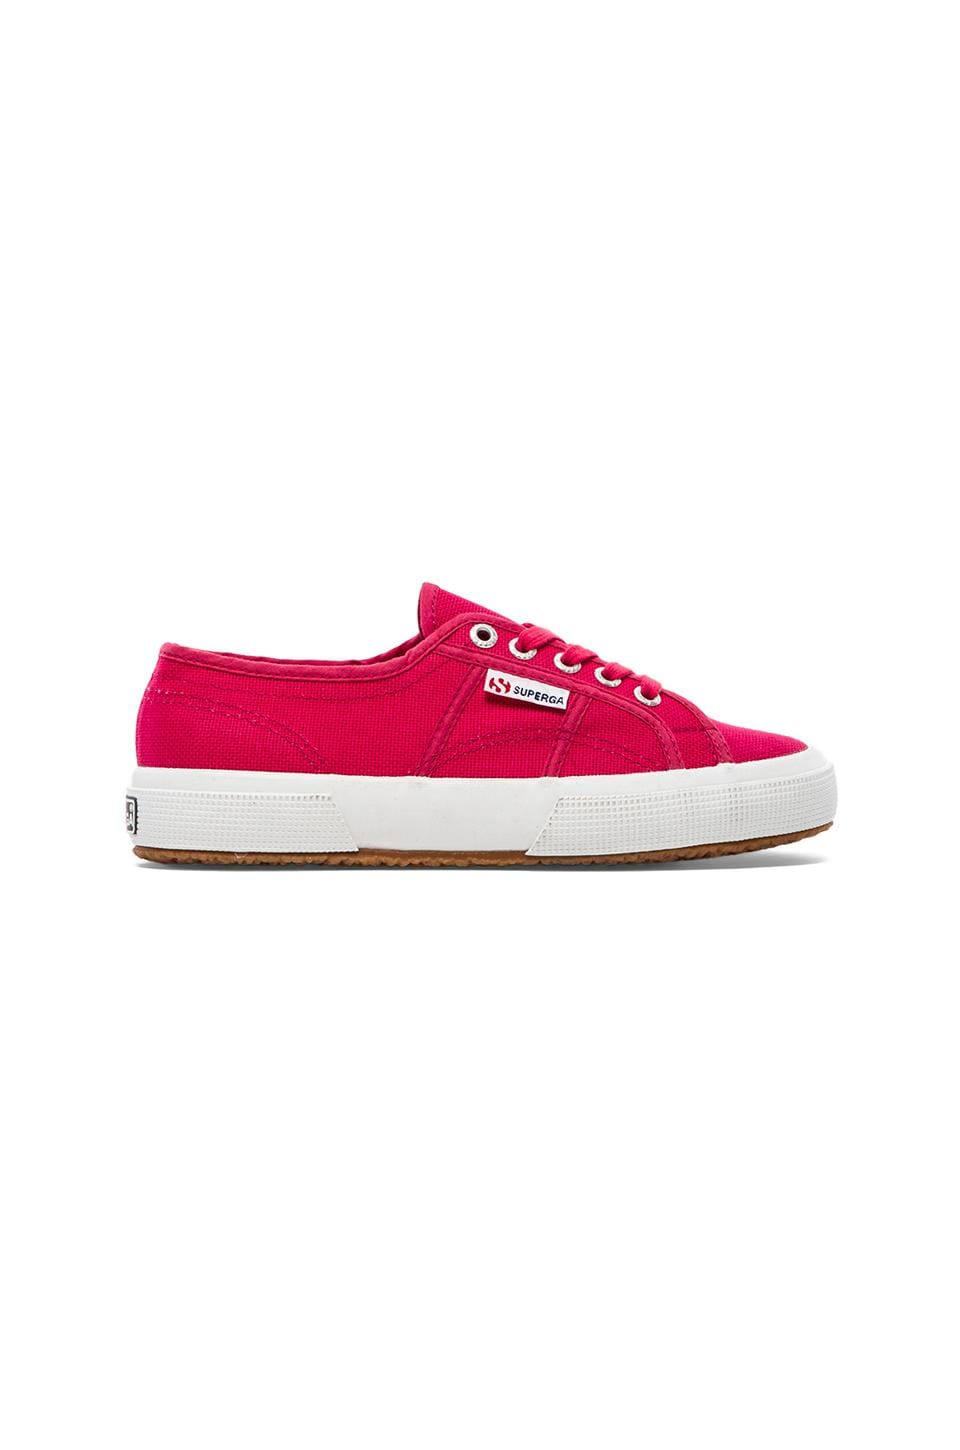 Superga Cotu Classic Sneakers in Azalea